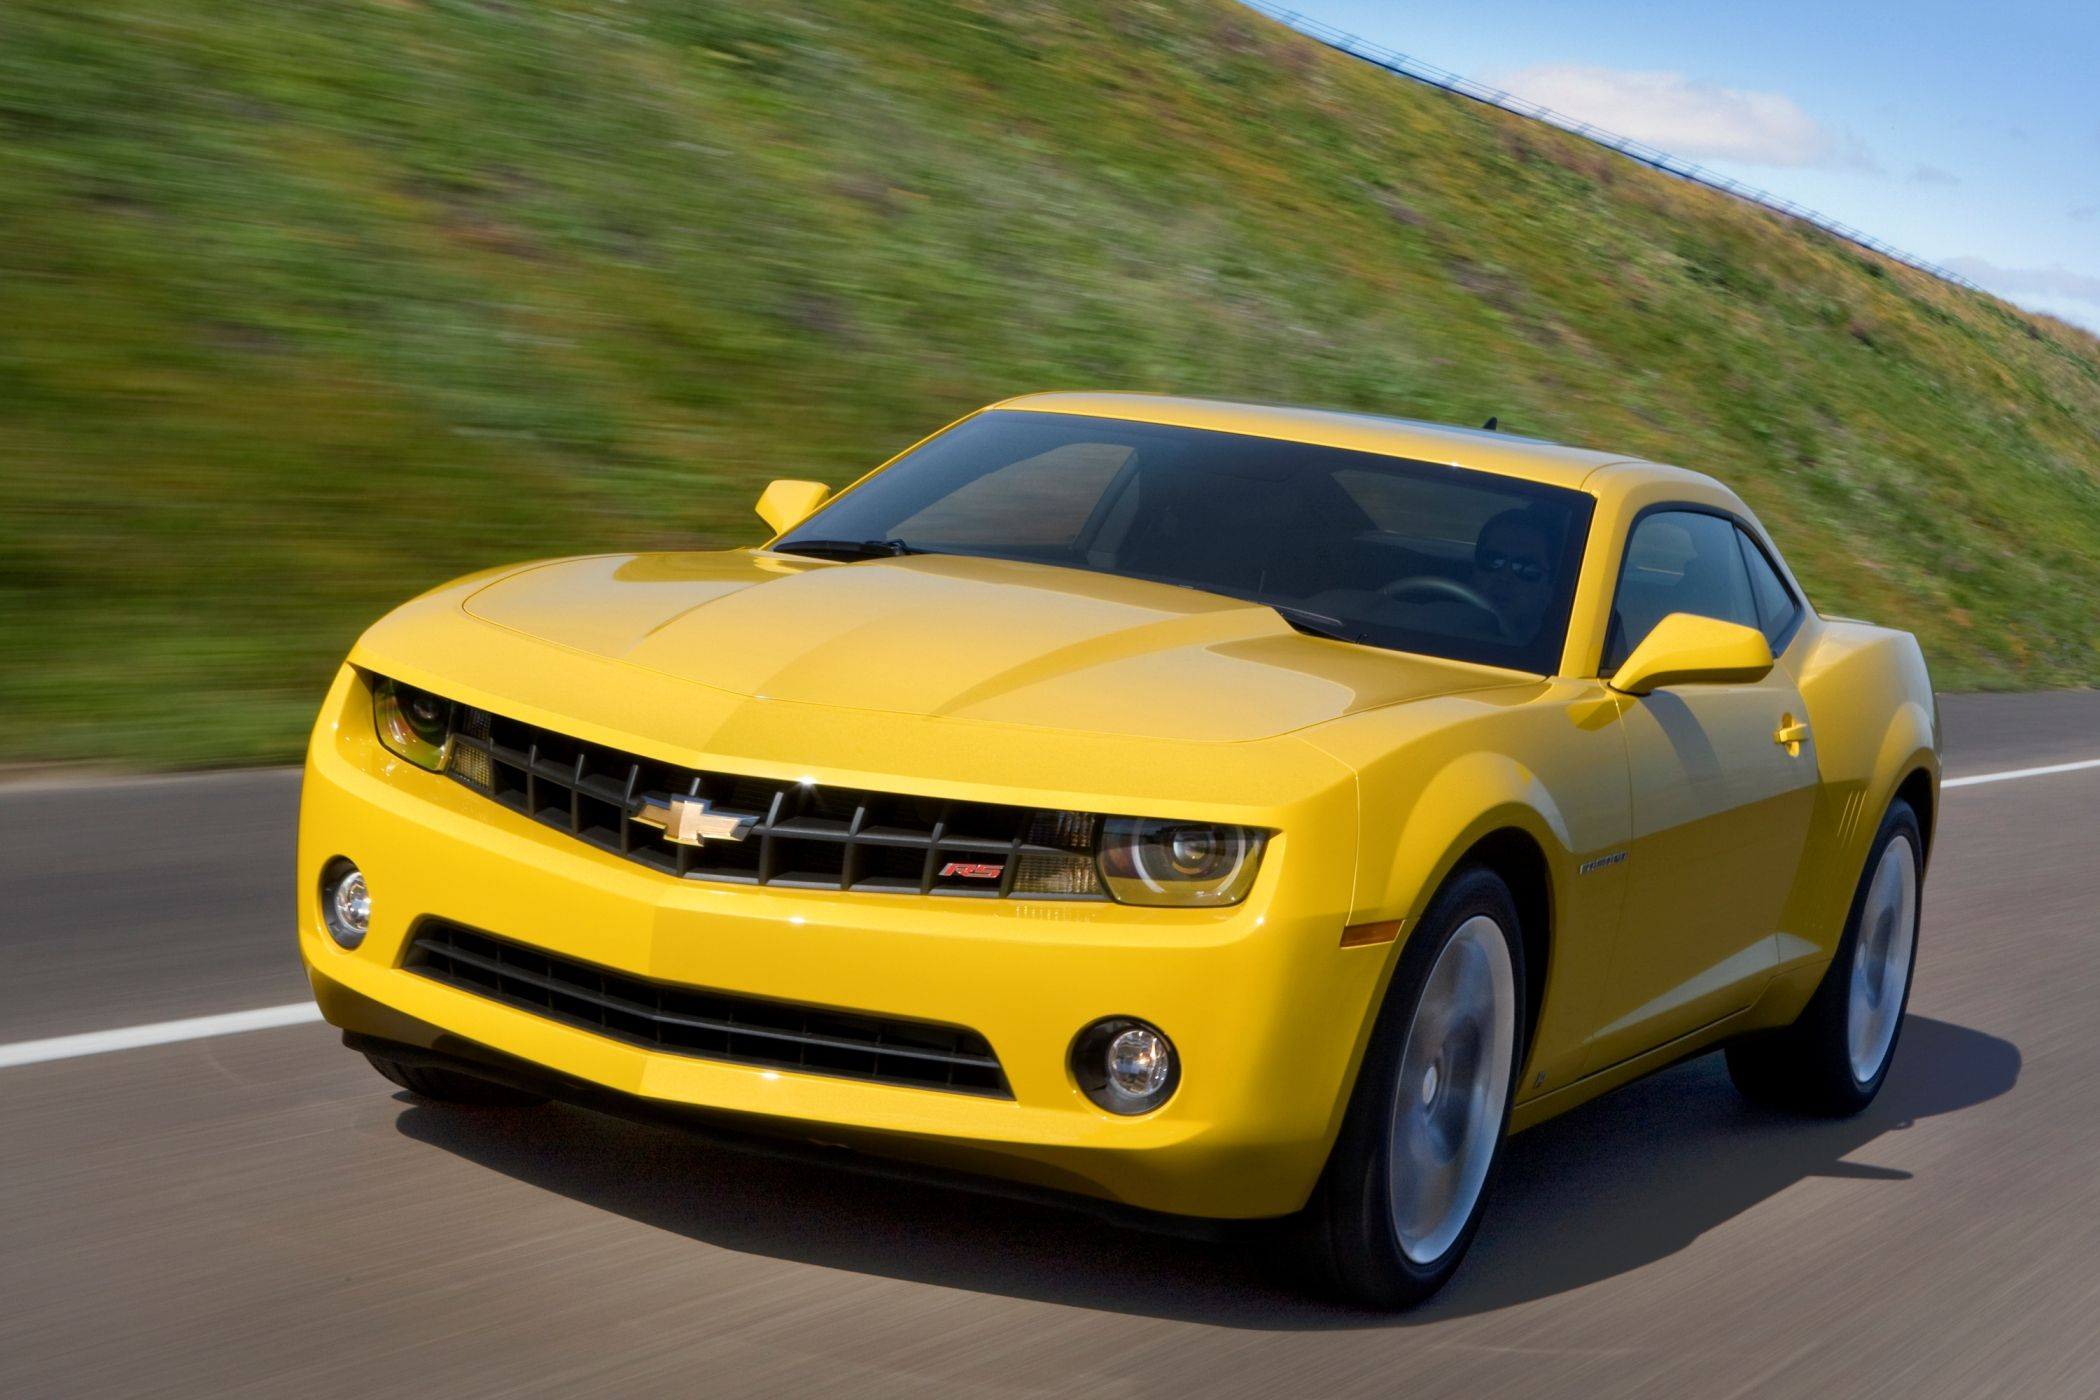 The Chevrolet Camaro Is An Automobile Manufactured By General Motors Gm Under Camaro Carros Cores